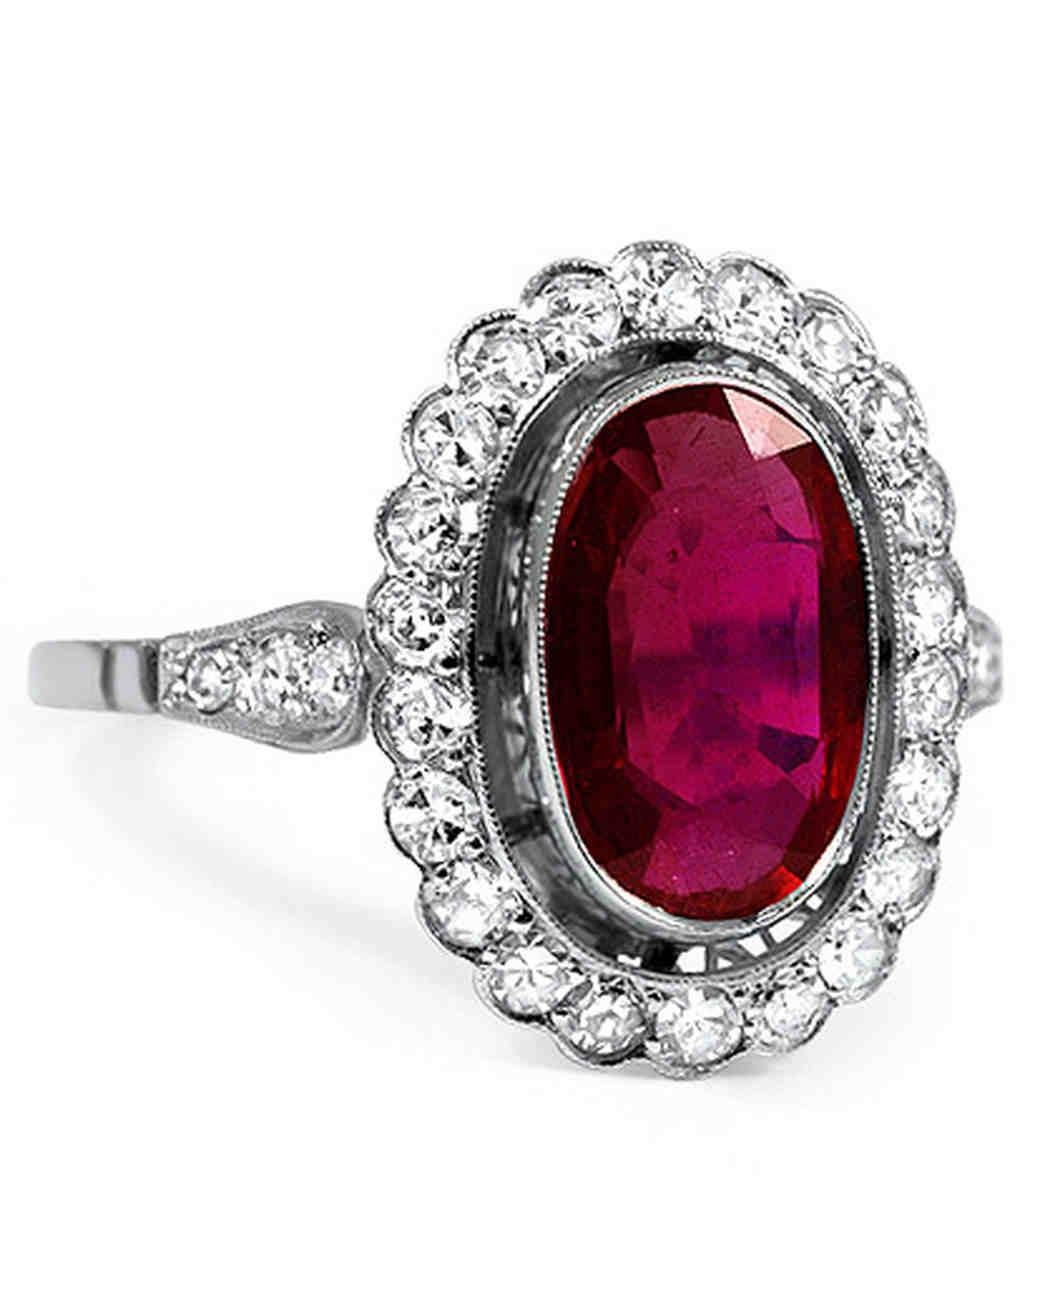 Ruby Wedding Rings: The Symbol Of Love | Home Design Articles Within Most Current Ruby Anniversary Rings (View 19 of 25)